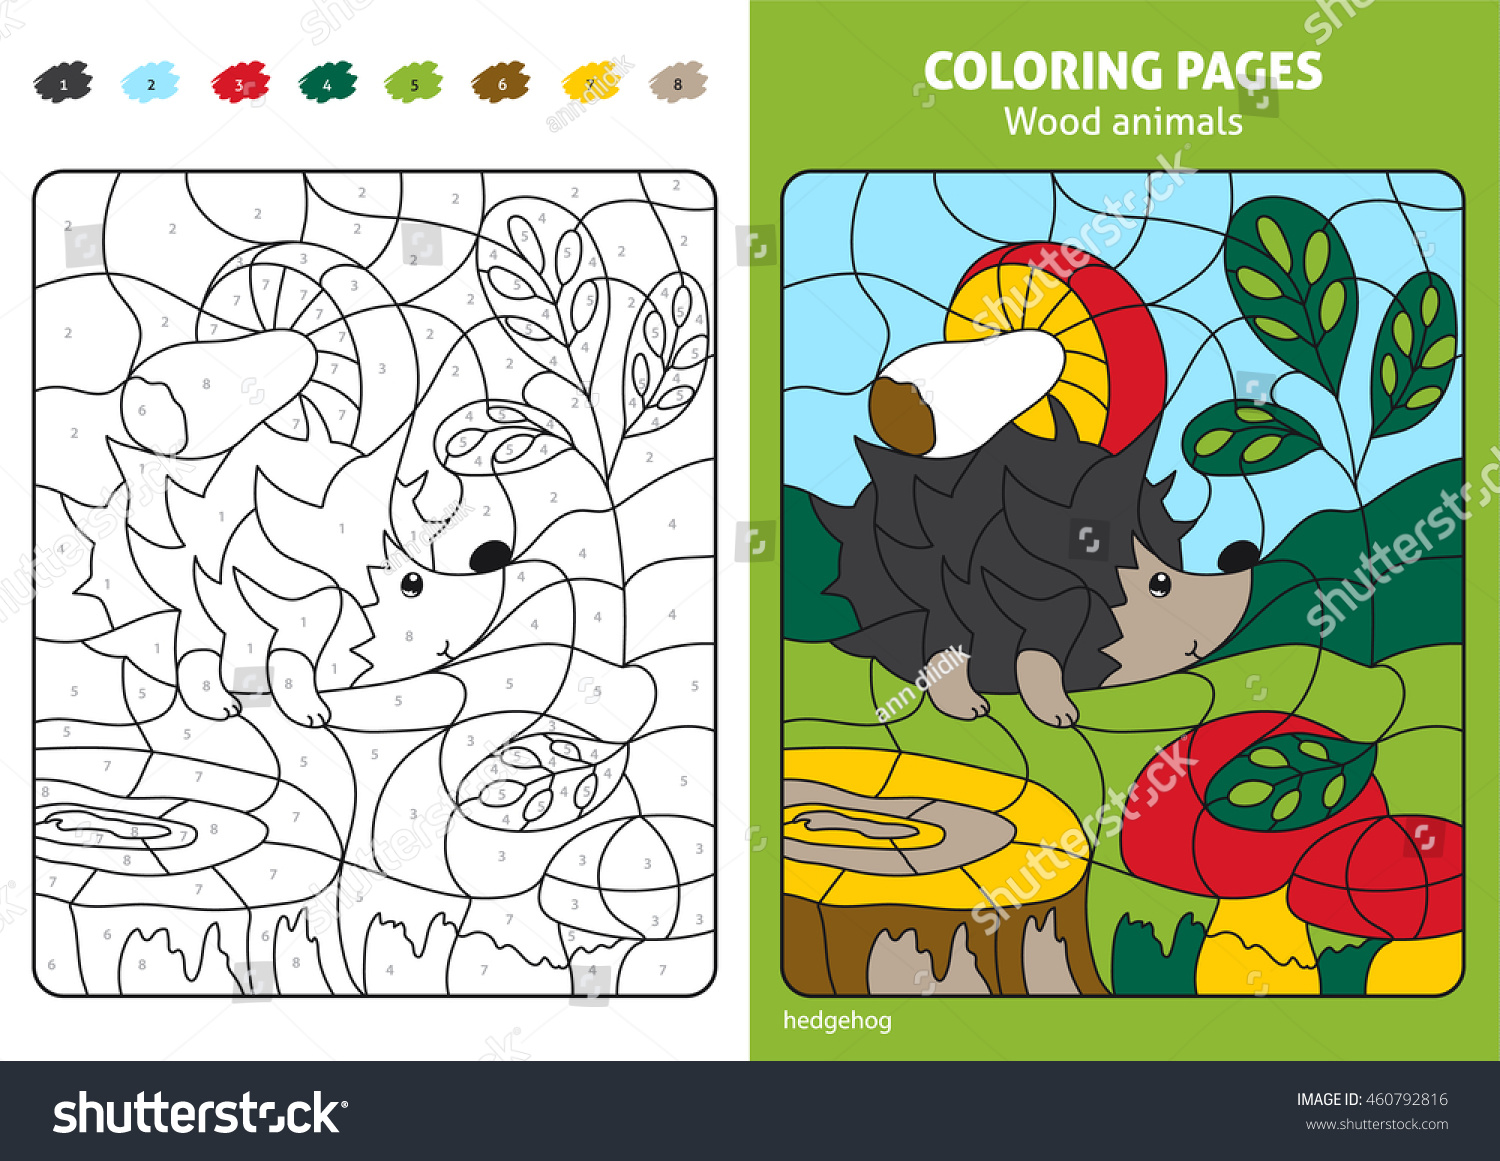 Wood Animals Coloring Page Kids Hedgehog Stock Vector (Royalty Free ...